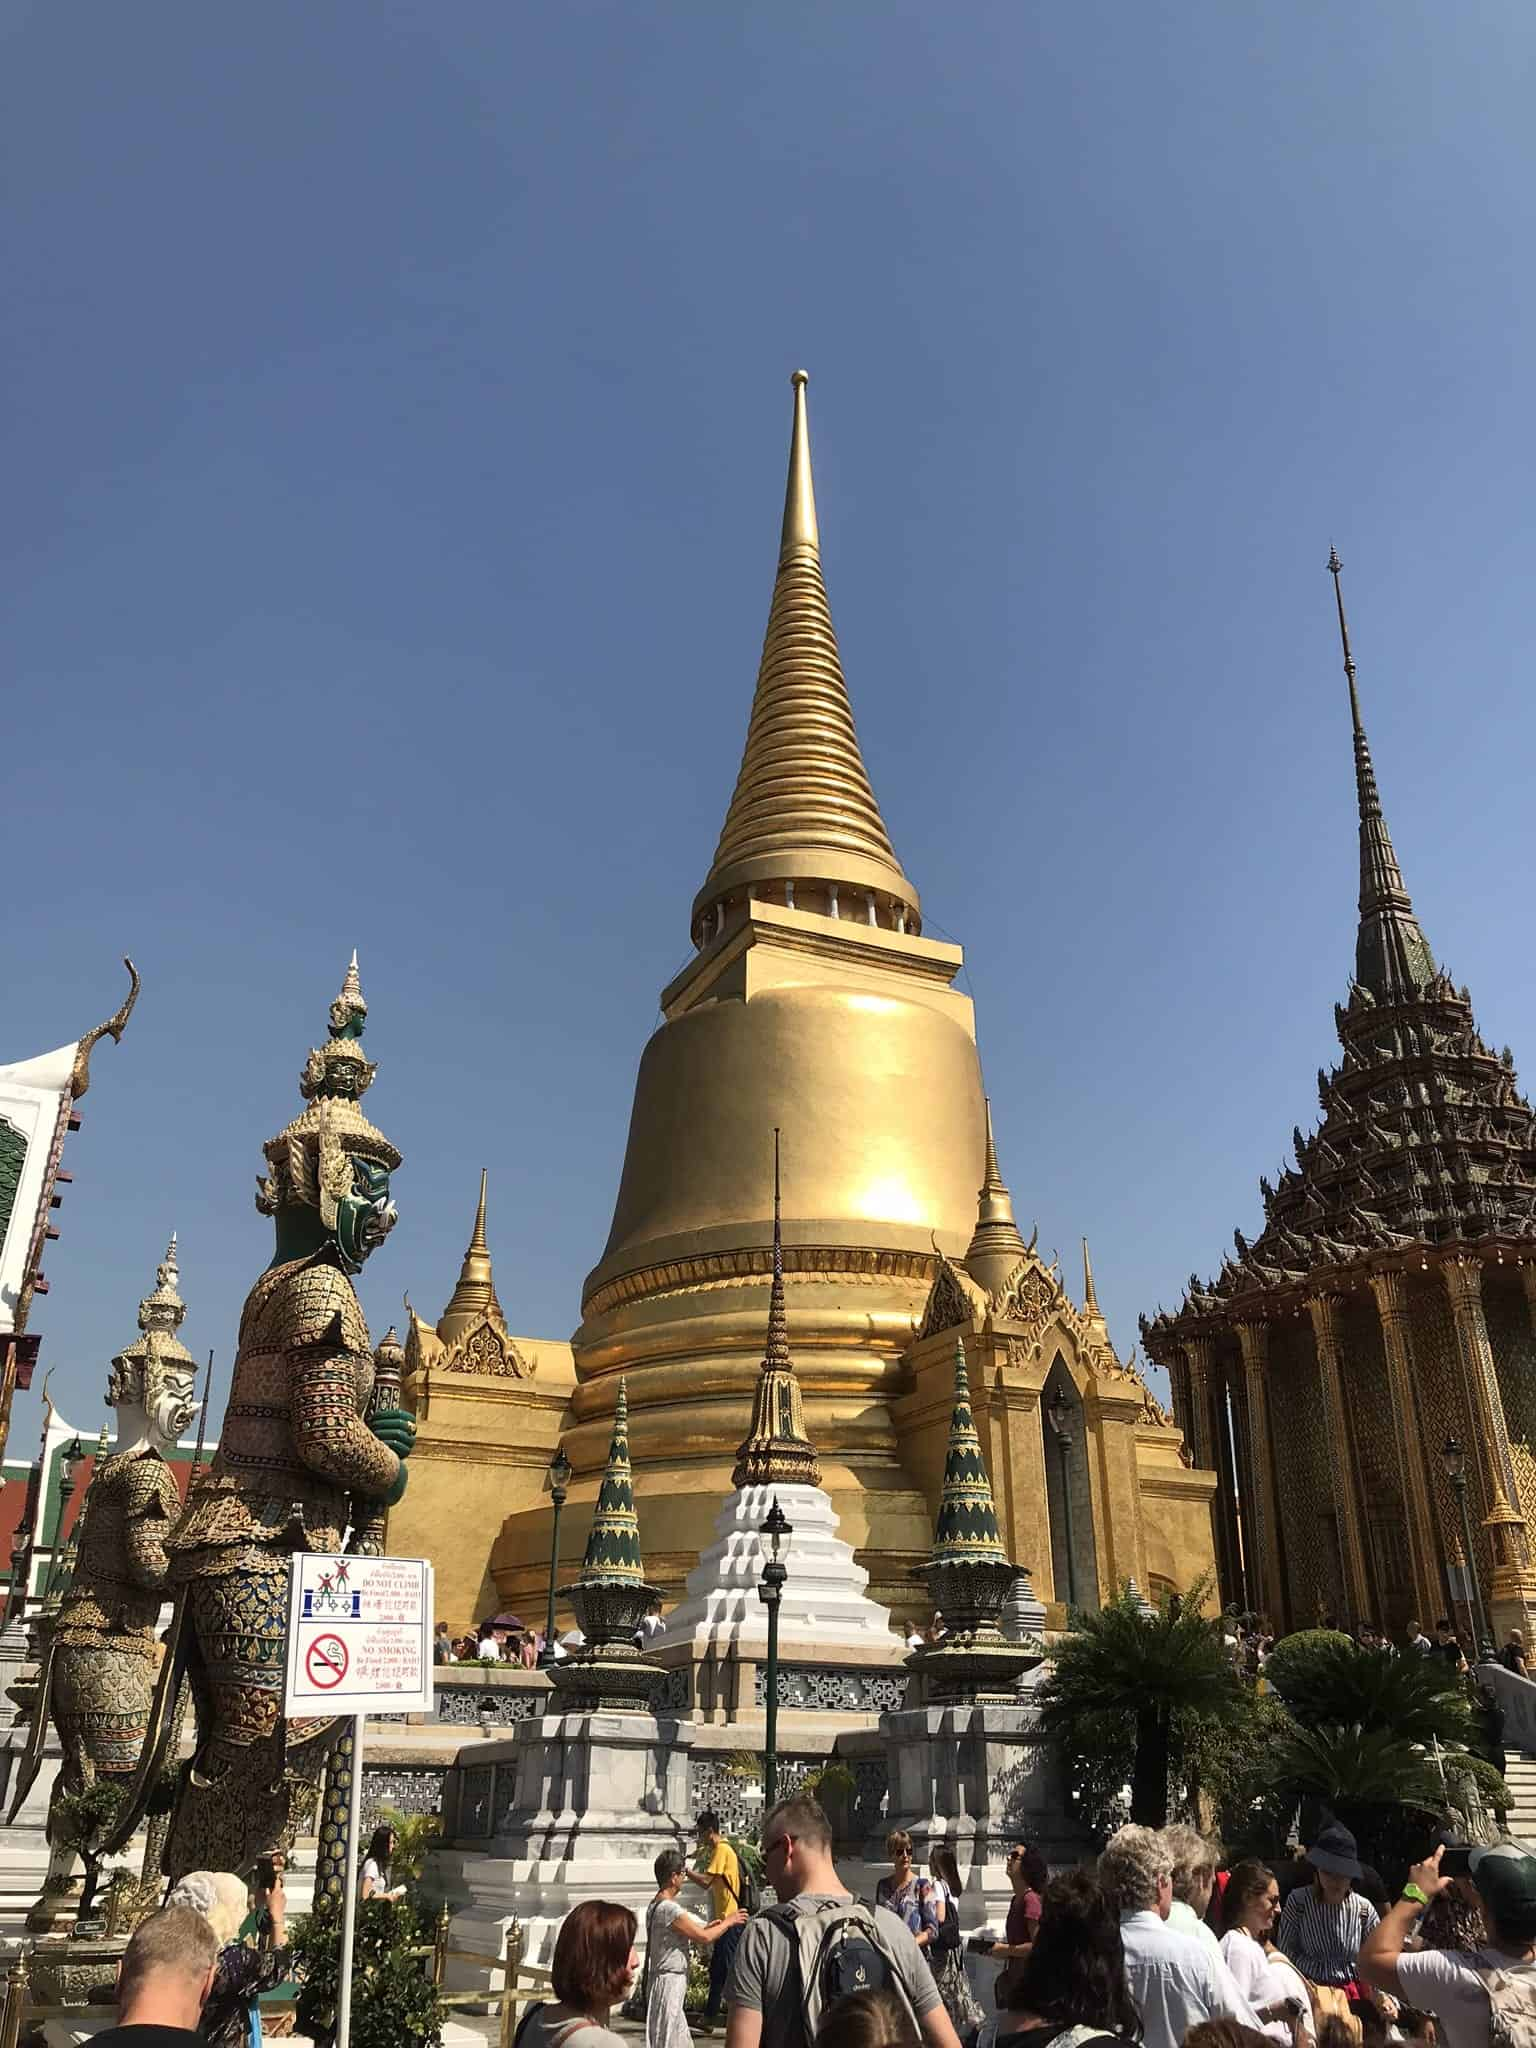 Thailand Travel Guide - The Grand Palace